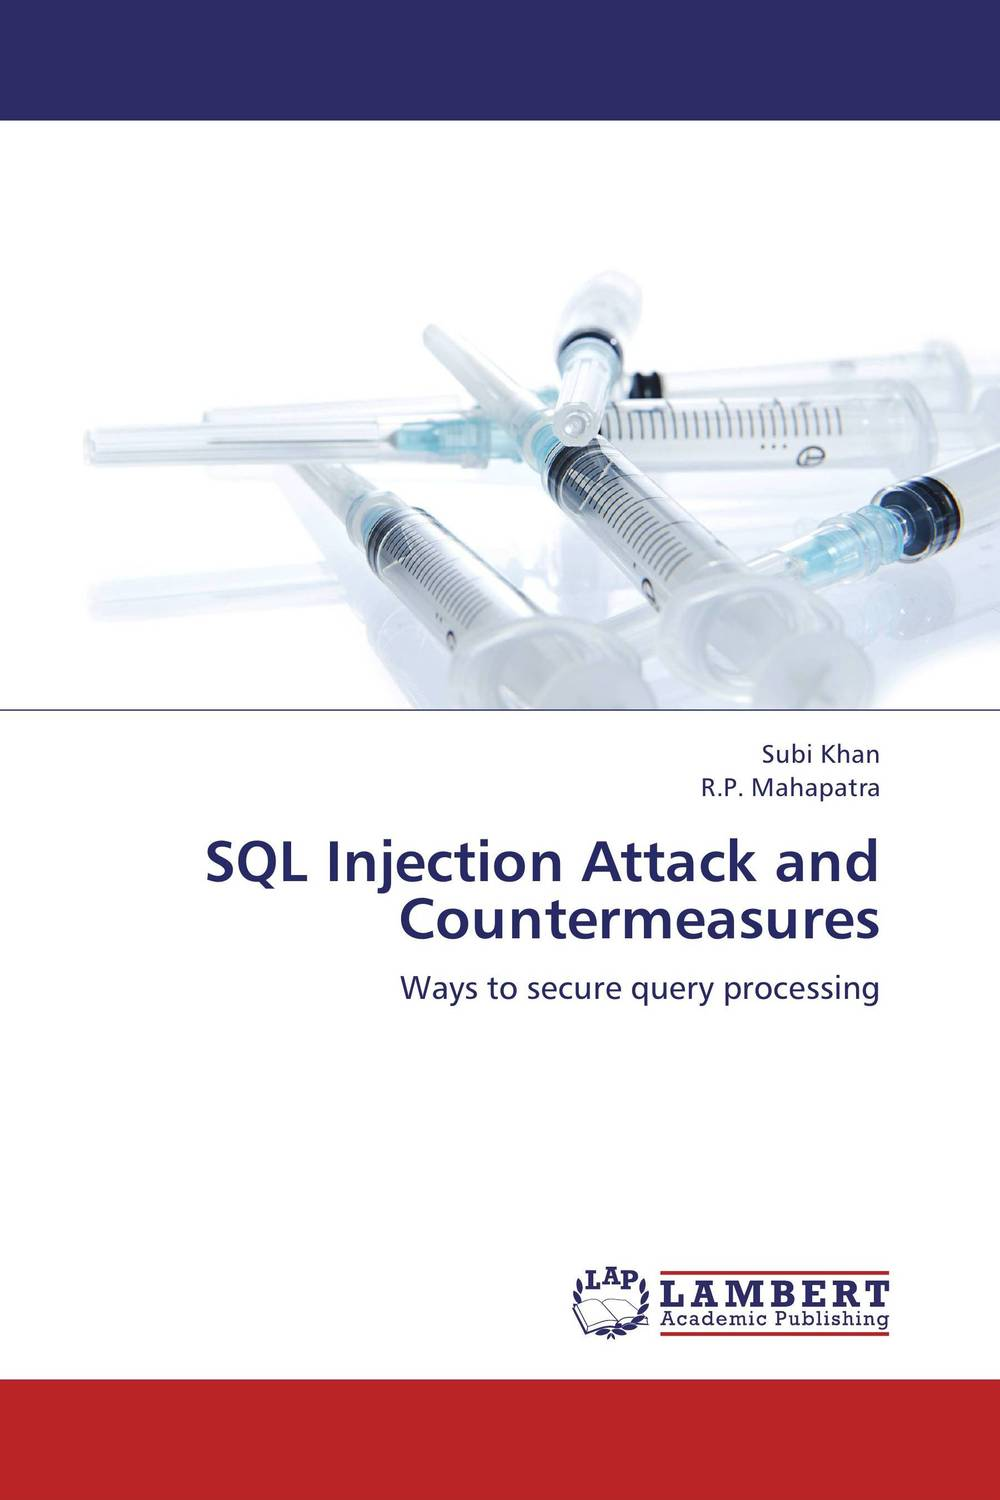 SQL Injection Attack and Countermeasures oracie sql